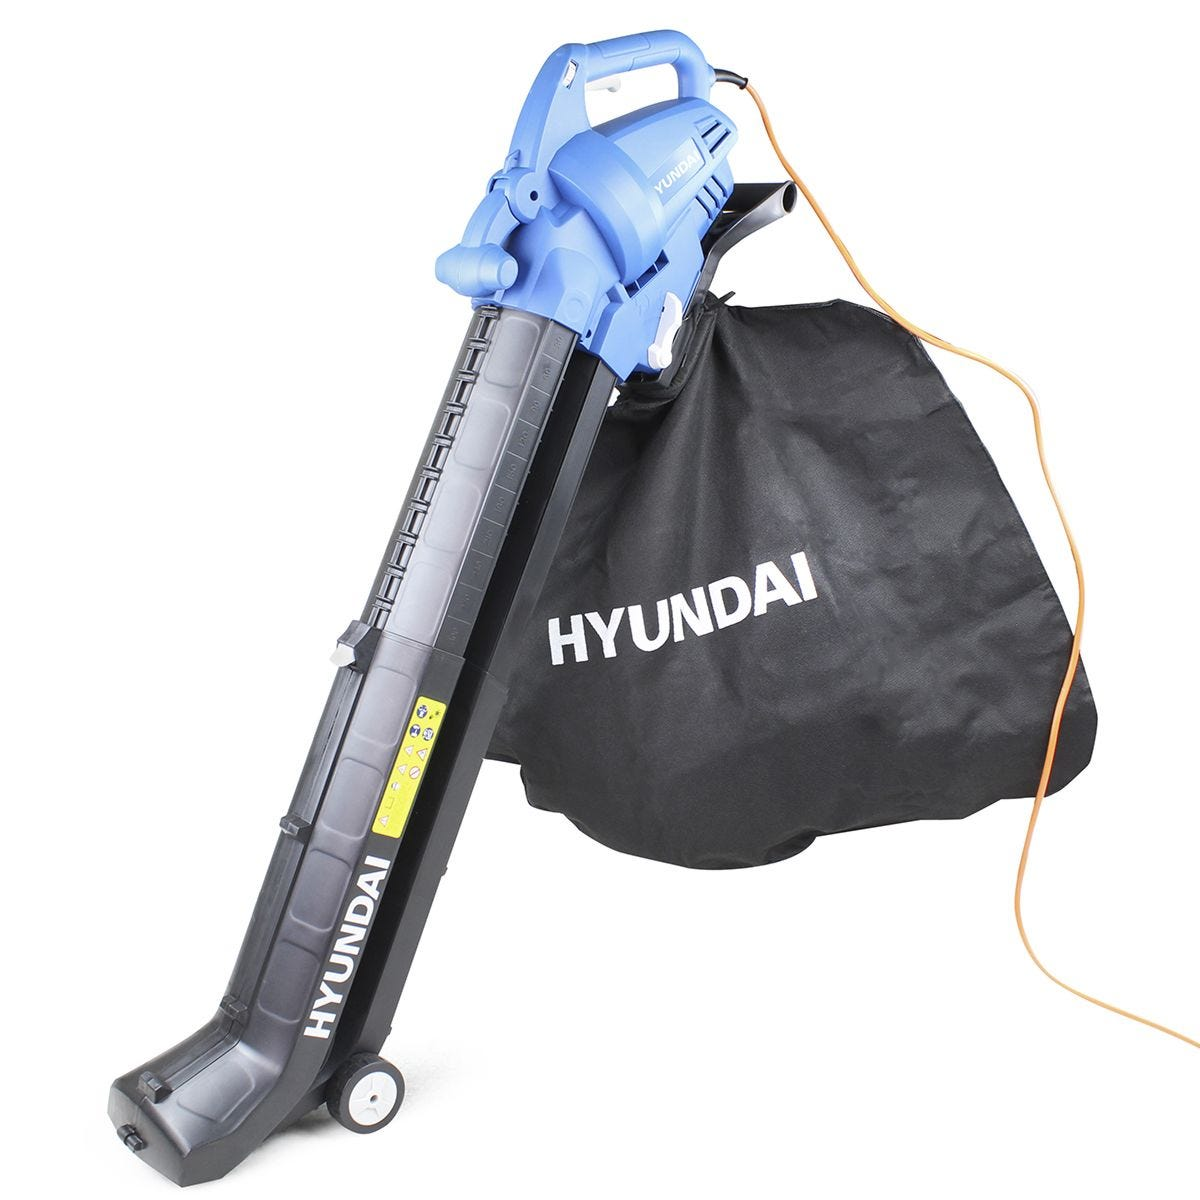 Hyundai HYBV3000E 3000W 3-in-1 Leaf Blower, Garden Vacuum & Shredder with Large 45L Collection Bag and Long 15m Cable